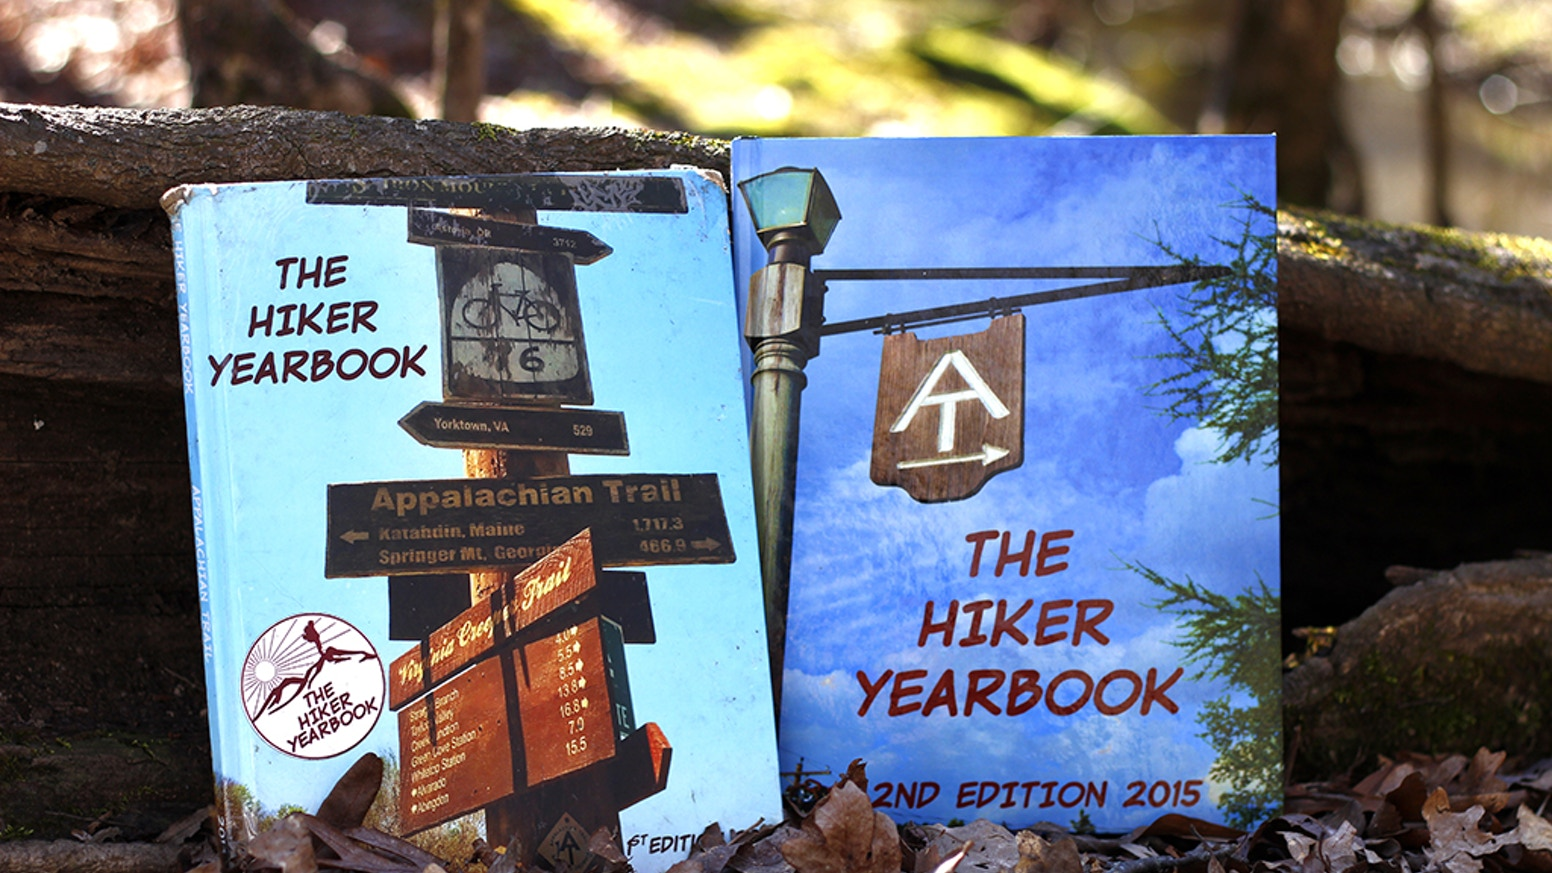 We are creating a Yearbook for Appalachian Trail Hikers. With a foundation in Trail Magic, our driving force is reconnecting hikers.